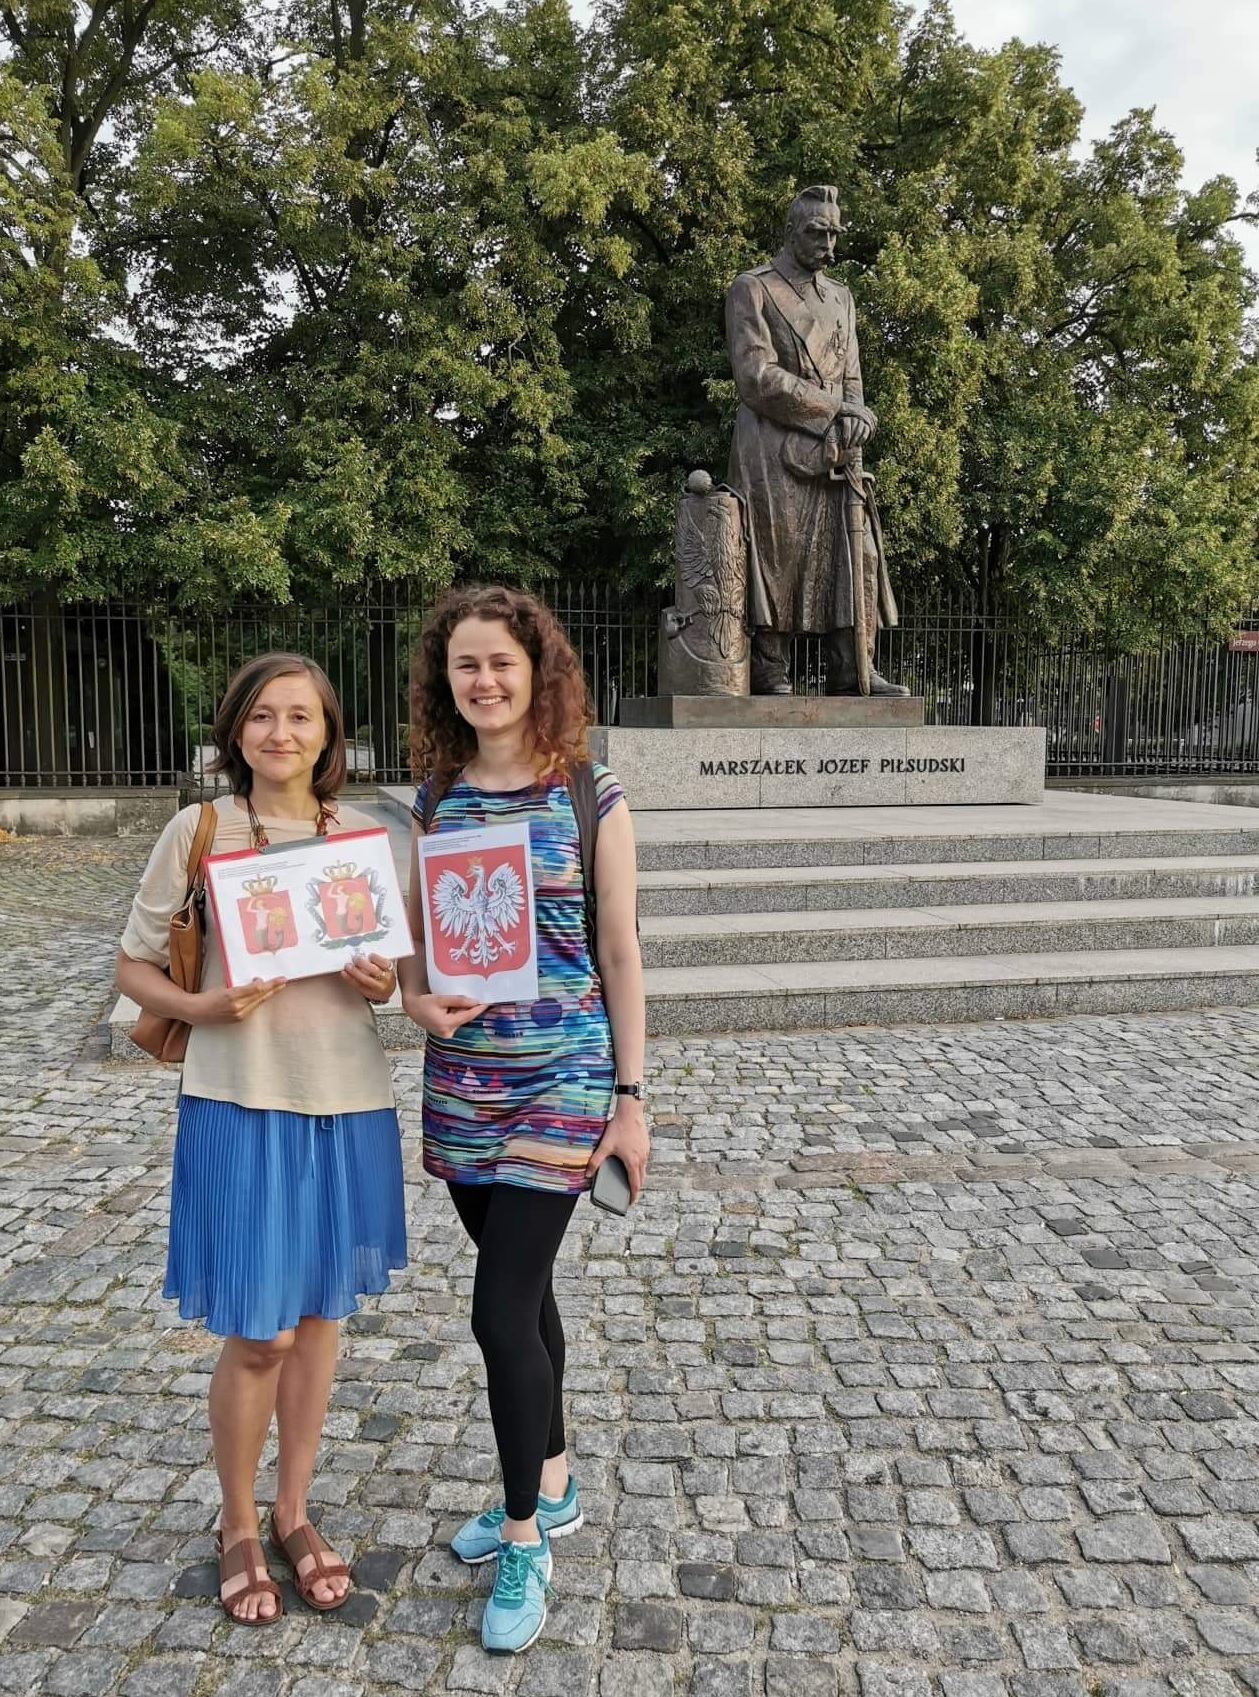 Step in Warsaw - City guide to Warsaw. A lovely tourist from Philippines is experiencing Warsaw in the company of two lovely residents of Warsaw:). Patriotic introduction: the coats of arms of Poland and Warsaw are being presented on the background of the monument of Marshal Józef Piłsudski. Warsaw, 23.07.2019.